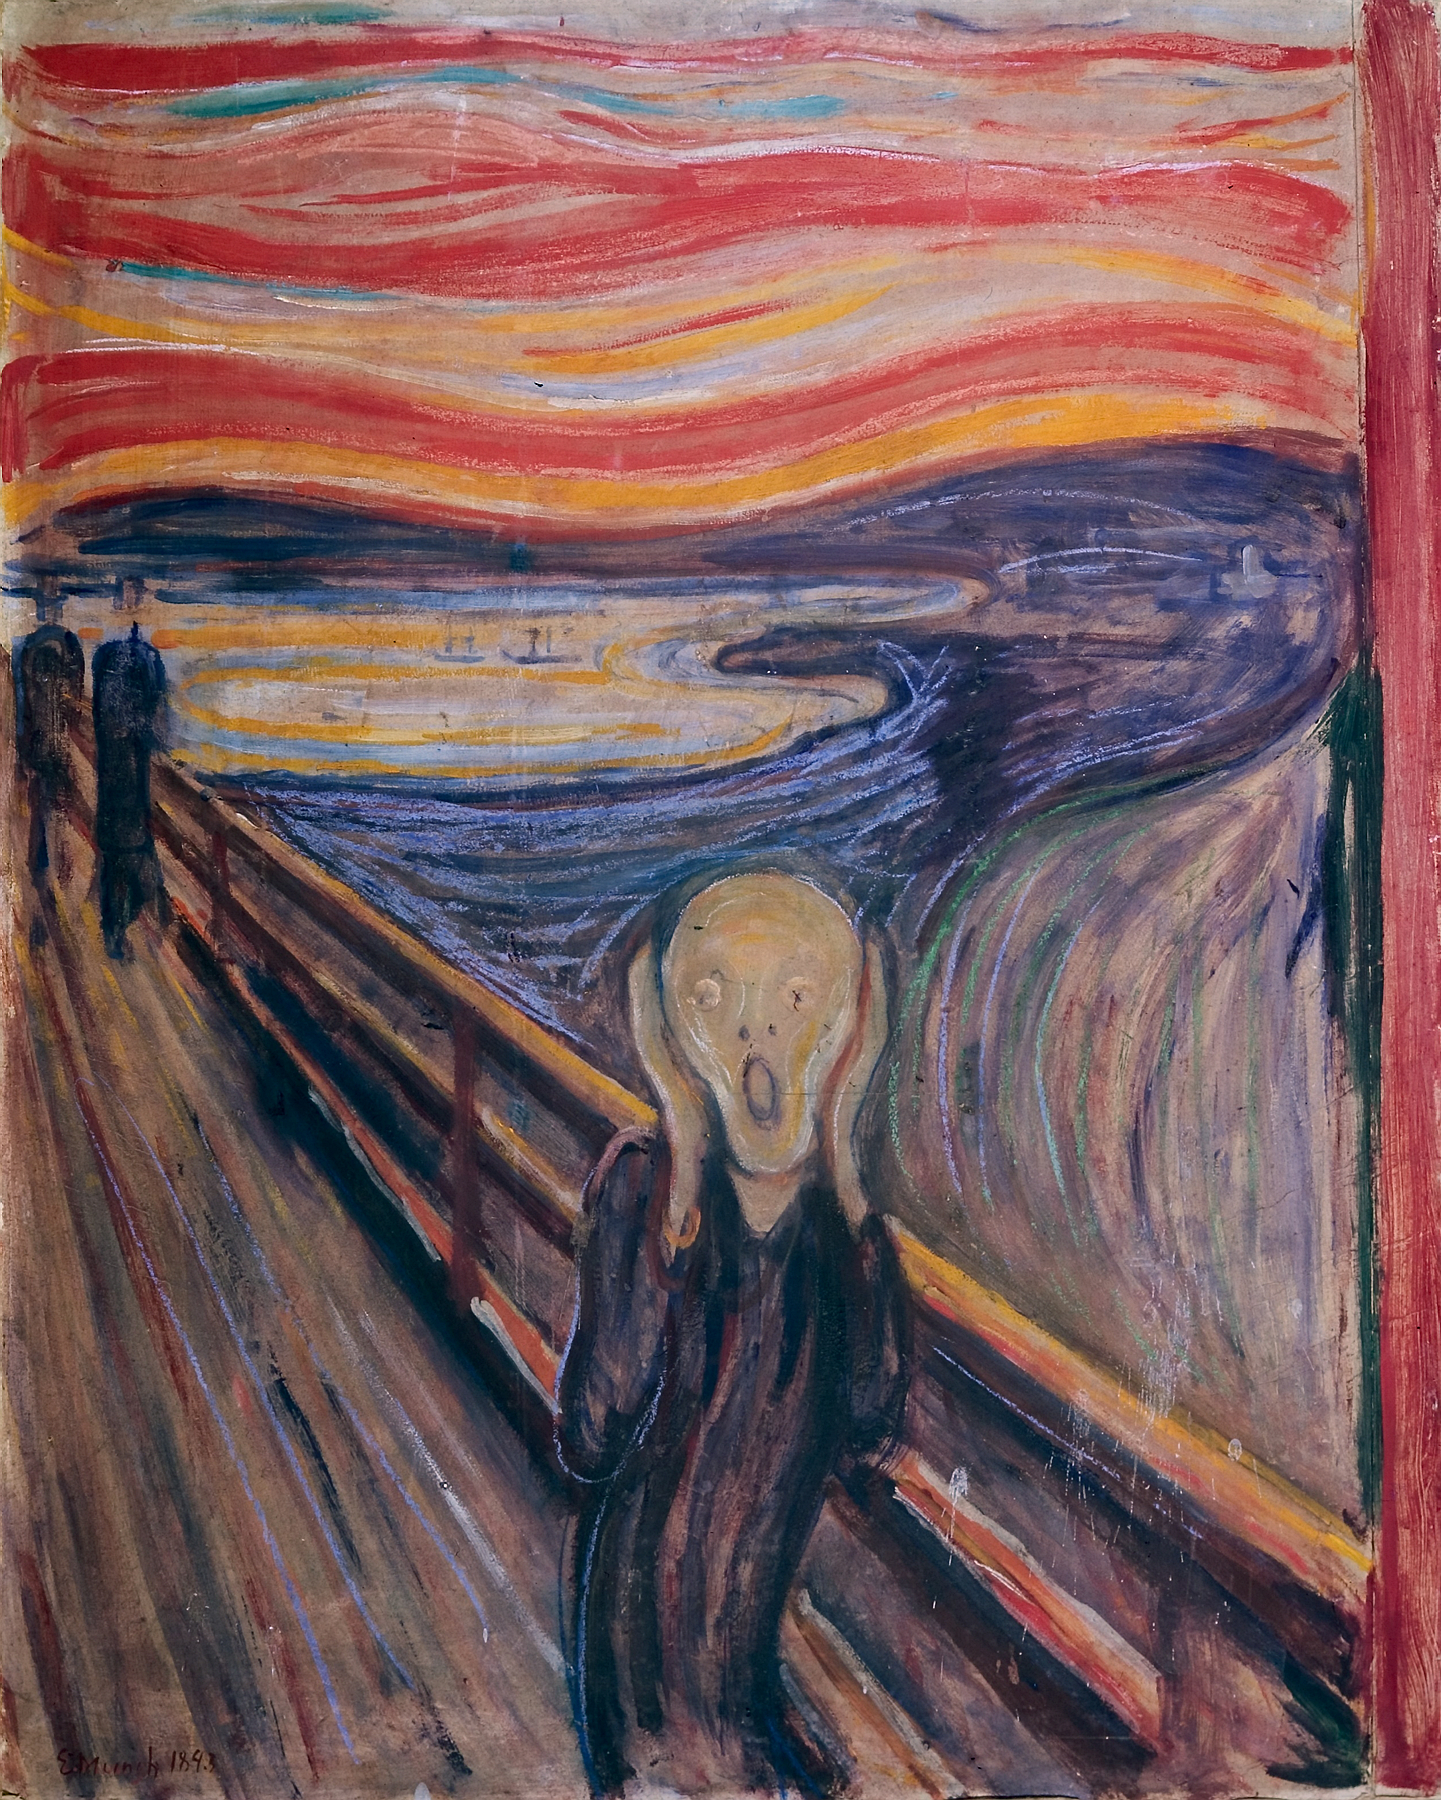 essay on edvard munch the scream Critical essay #1 submitted by: elizabeth samuels feb 3, 2000 aesthetics-wi the painting, the scream, by edvard munch is compelling, even at first glance.